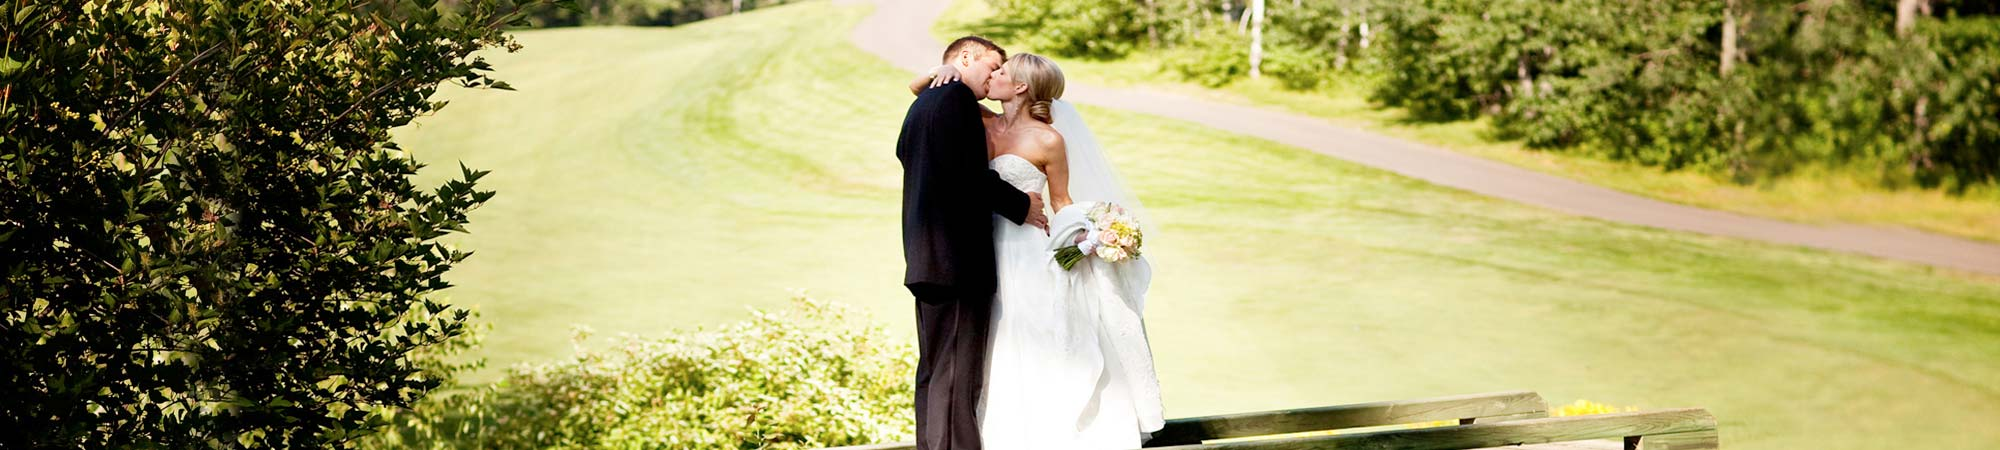 slide-wedding_legacy_kiss_2000x450